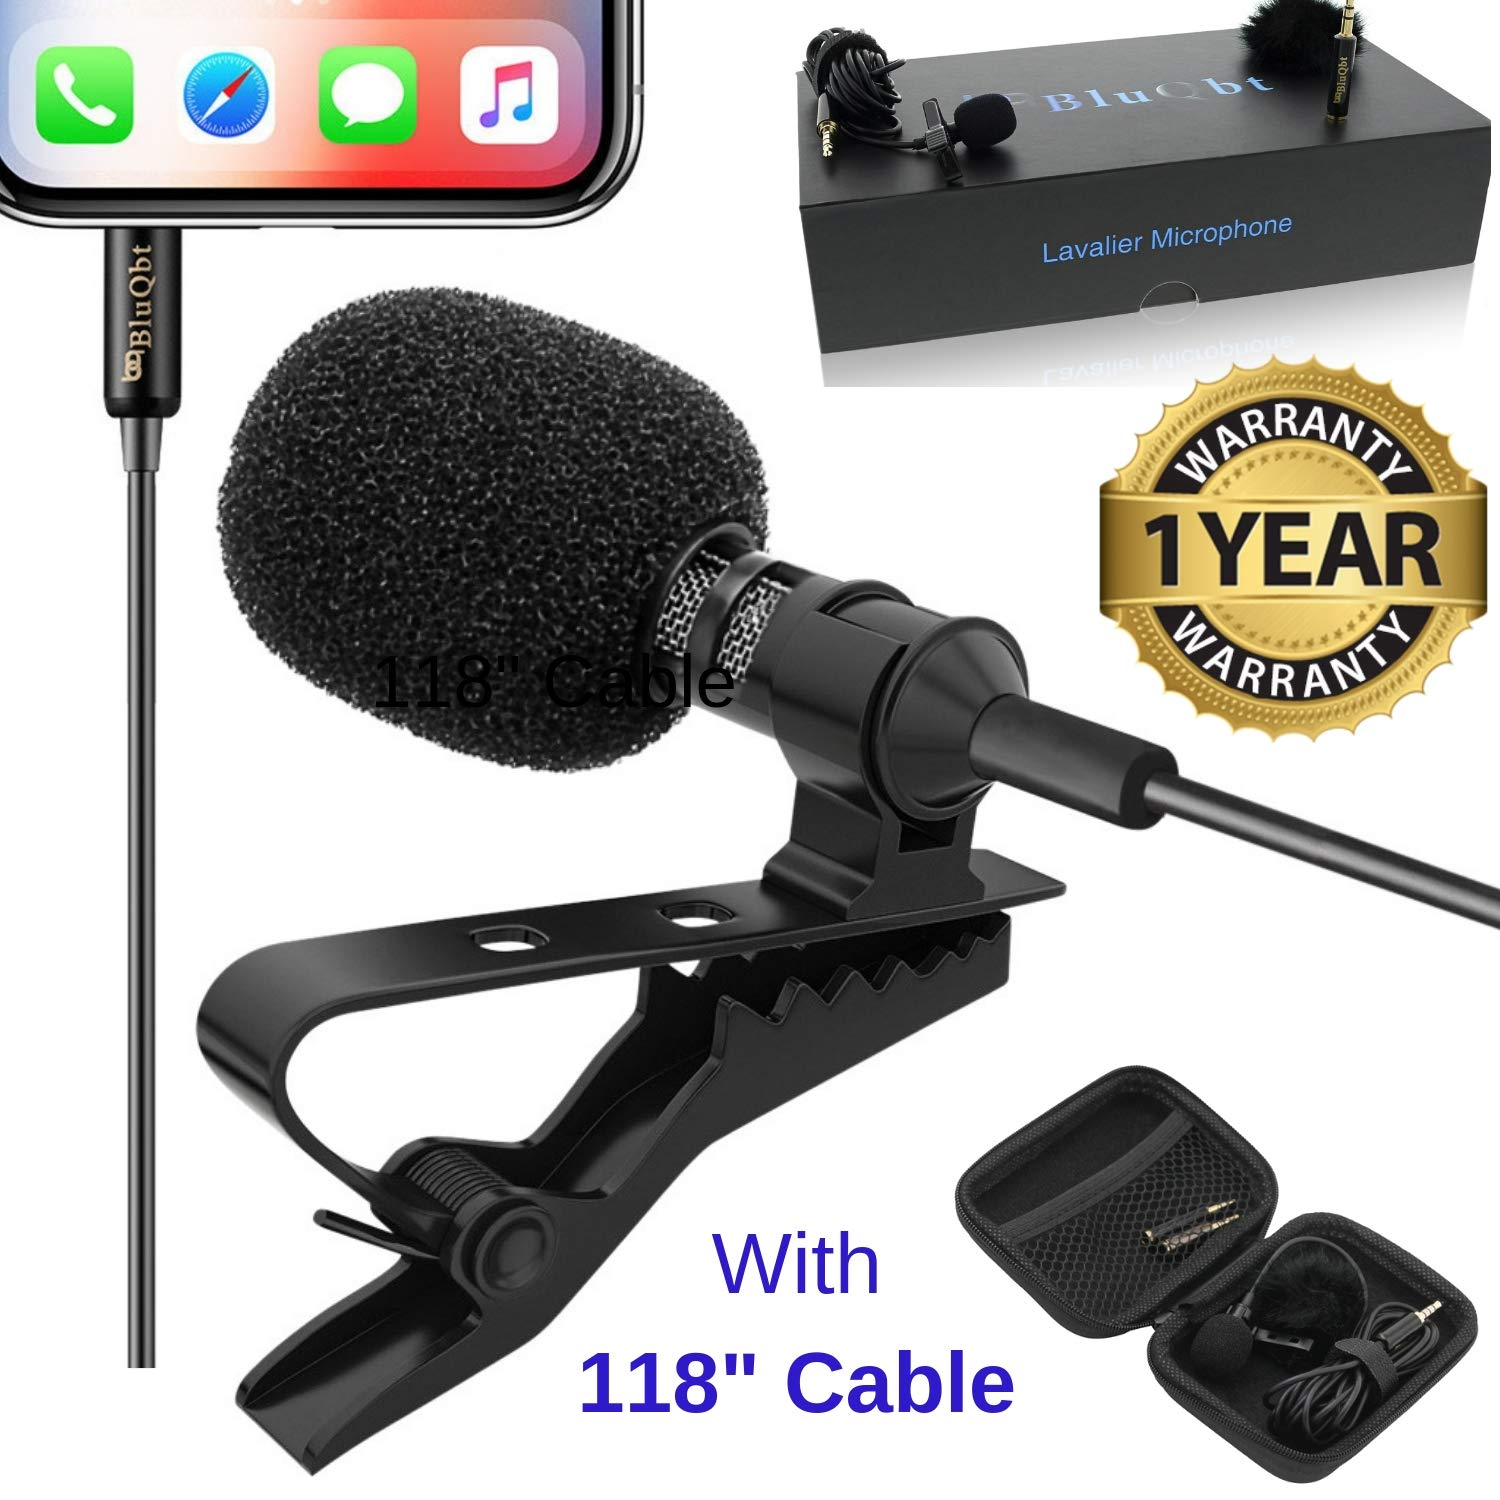 Lavalier Lapel iPhone Ipad Microphone - BluQbt Professional High Audio Quality Clip On asmr Microphone Lav Mic for YouTube Camera Vlogging 118'' Cable and Nice Carry case, Compatible with Apple by BluQbt